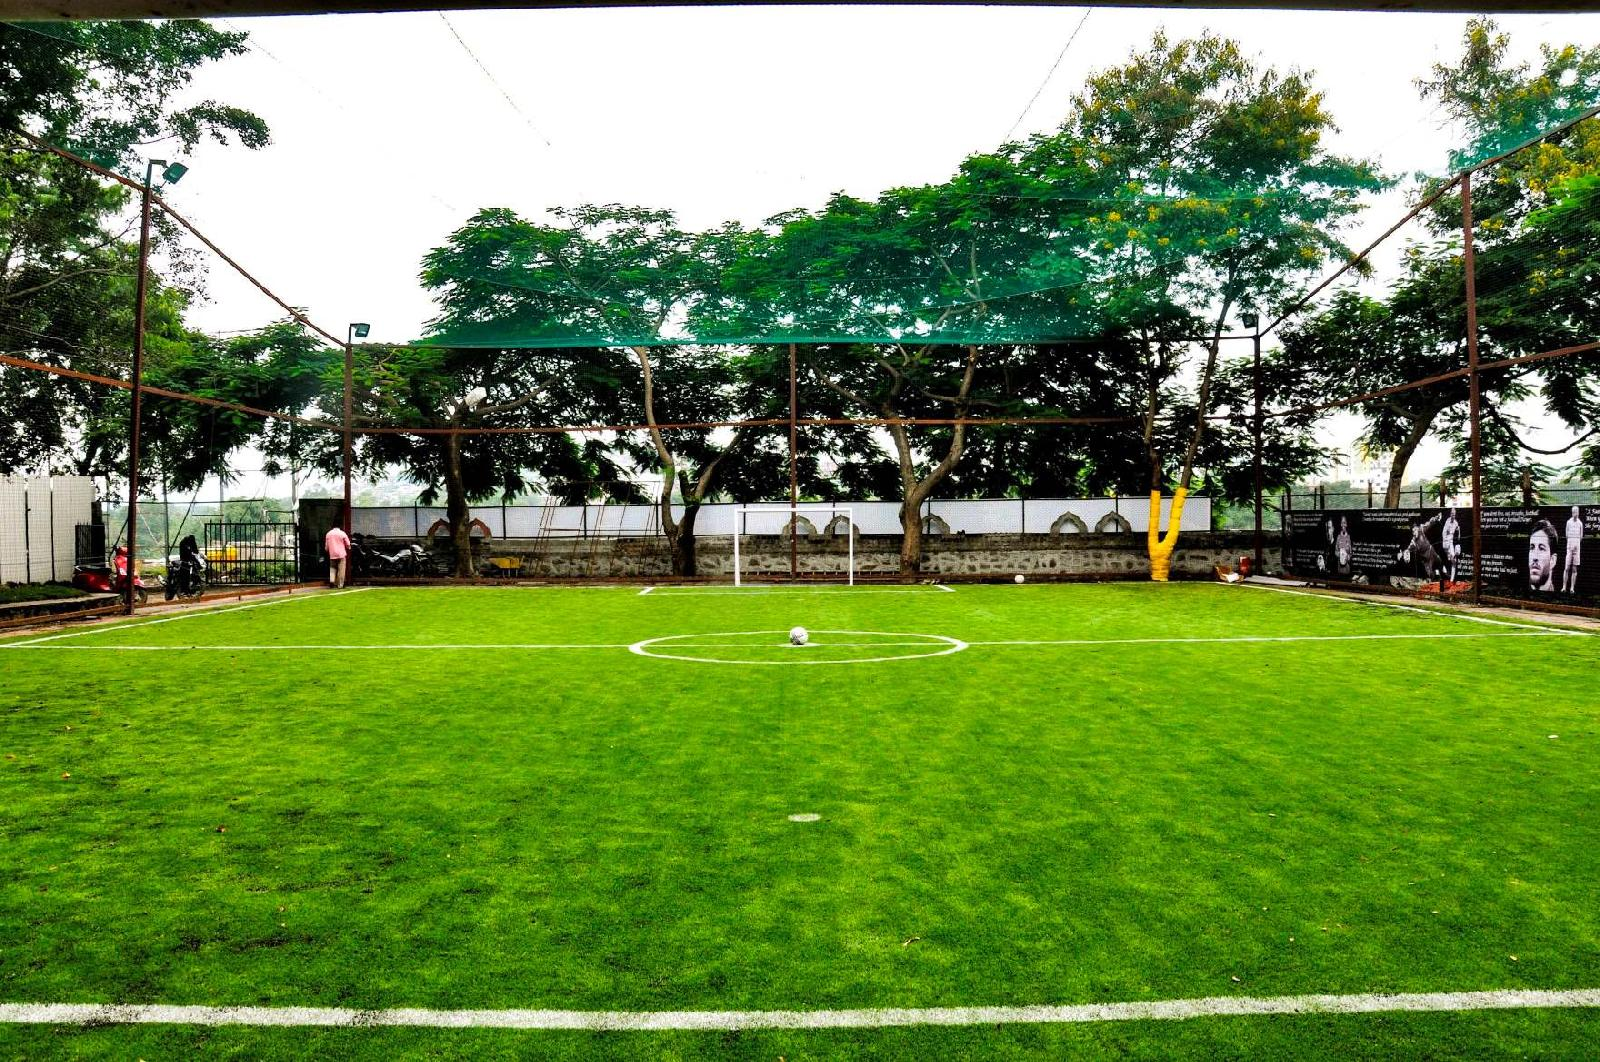 football turf booking application, turfs in calicut, turfs in malappuram, turfs in kannur, turfs in wayanad, football turfs in trivandrum, tvm, thiruvanathapuram, turfs in kozhikode, turfs in kannur,playspots, playspotsapp, play spots app, play spots, football turfs in calicut , malabars fitst turf booking application,